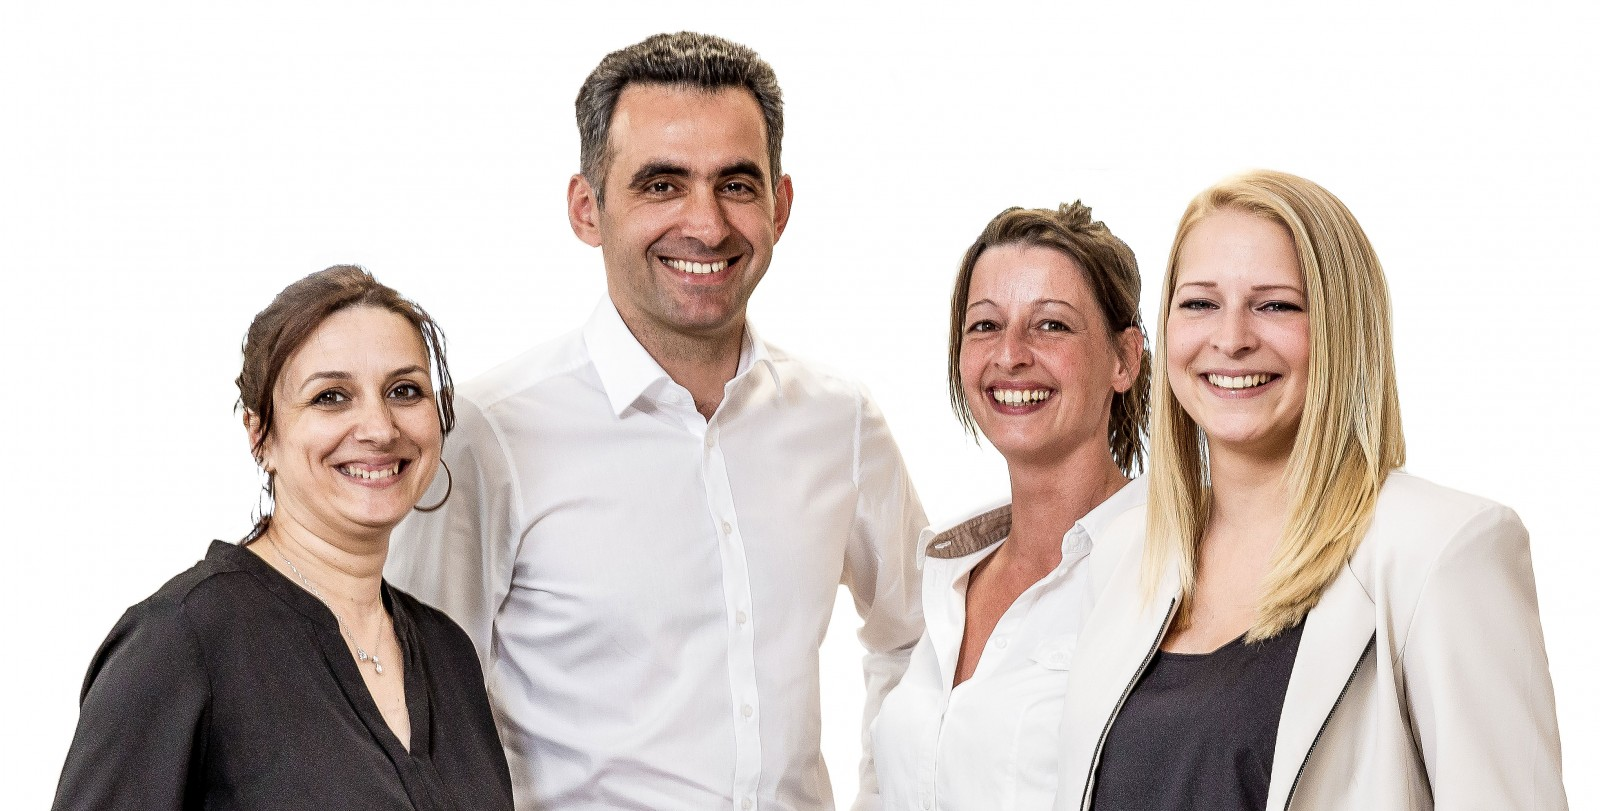 Team-5-Orthopade-Giessen-DrPavlidis-Job